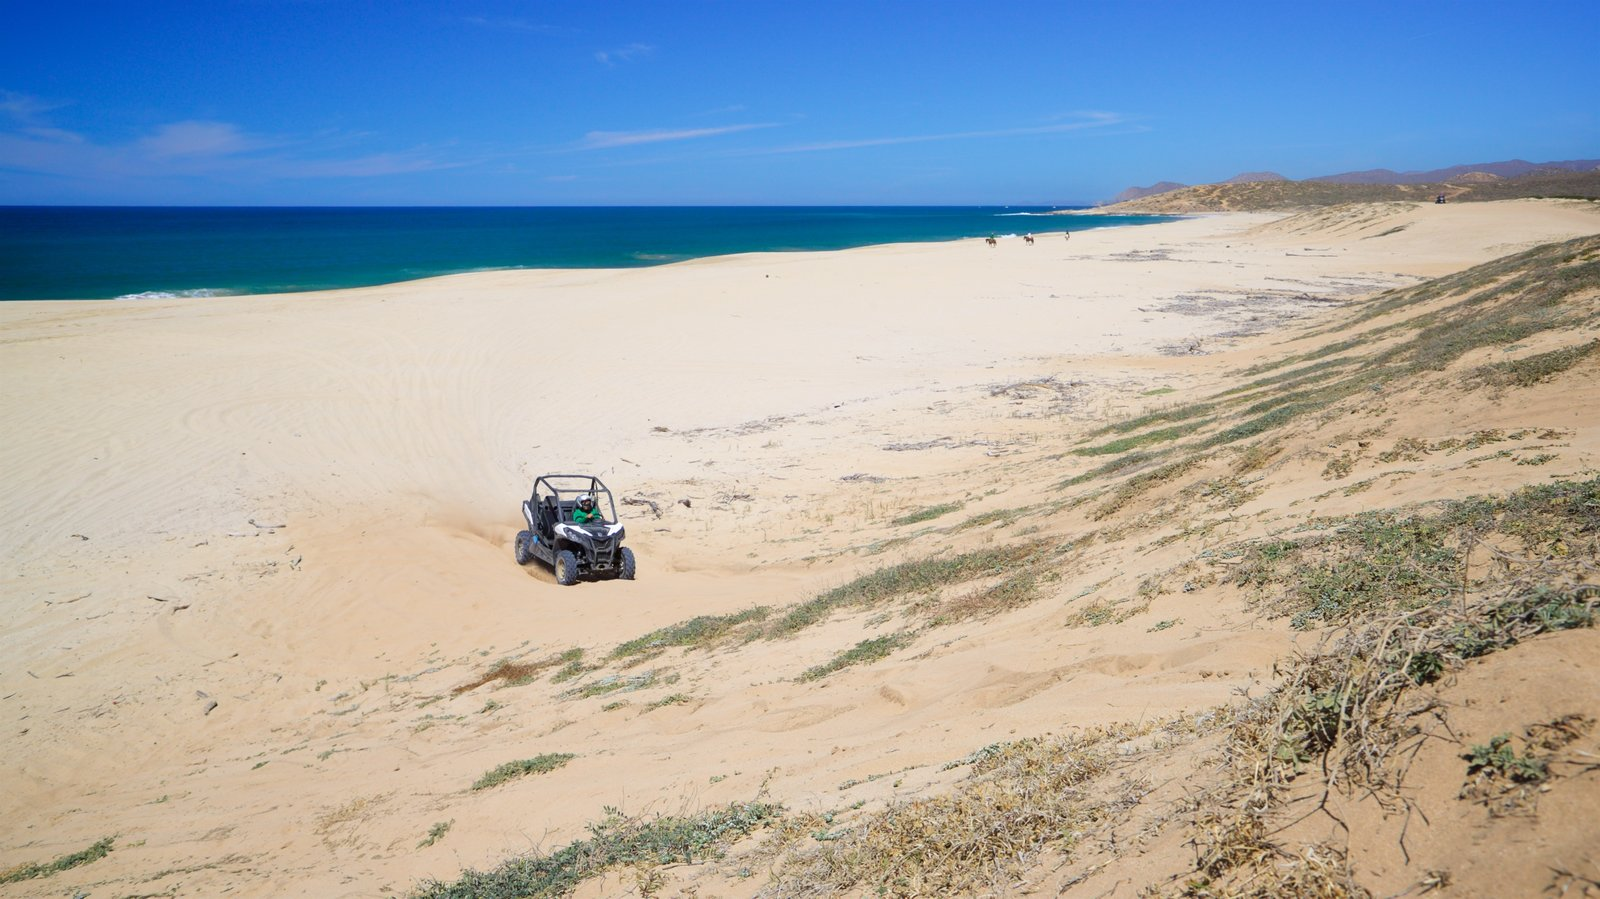 Migrino featuring general coastal views, off road driving and a sandy beach